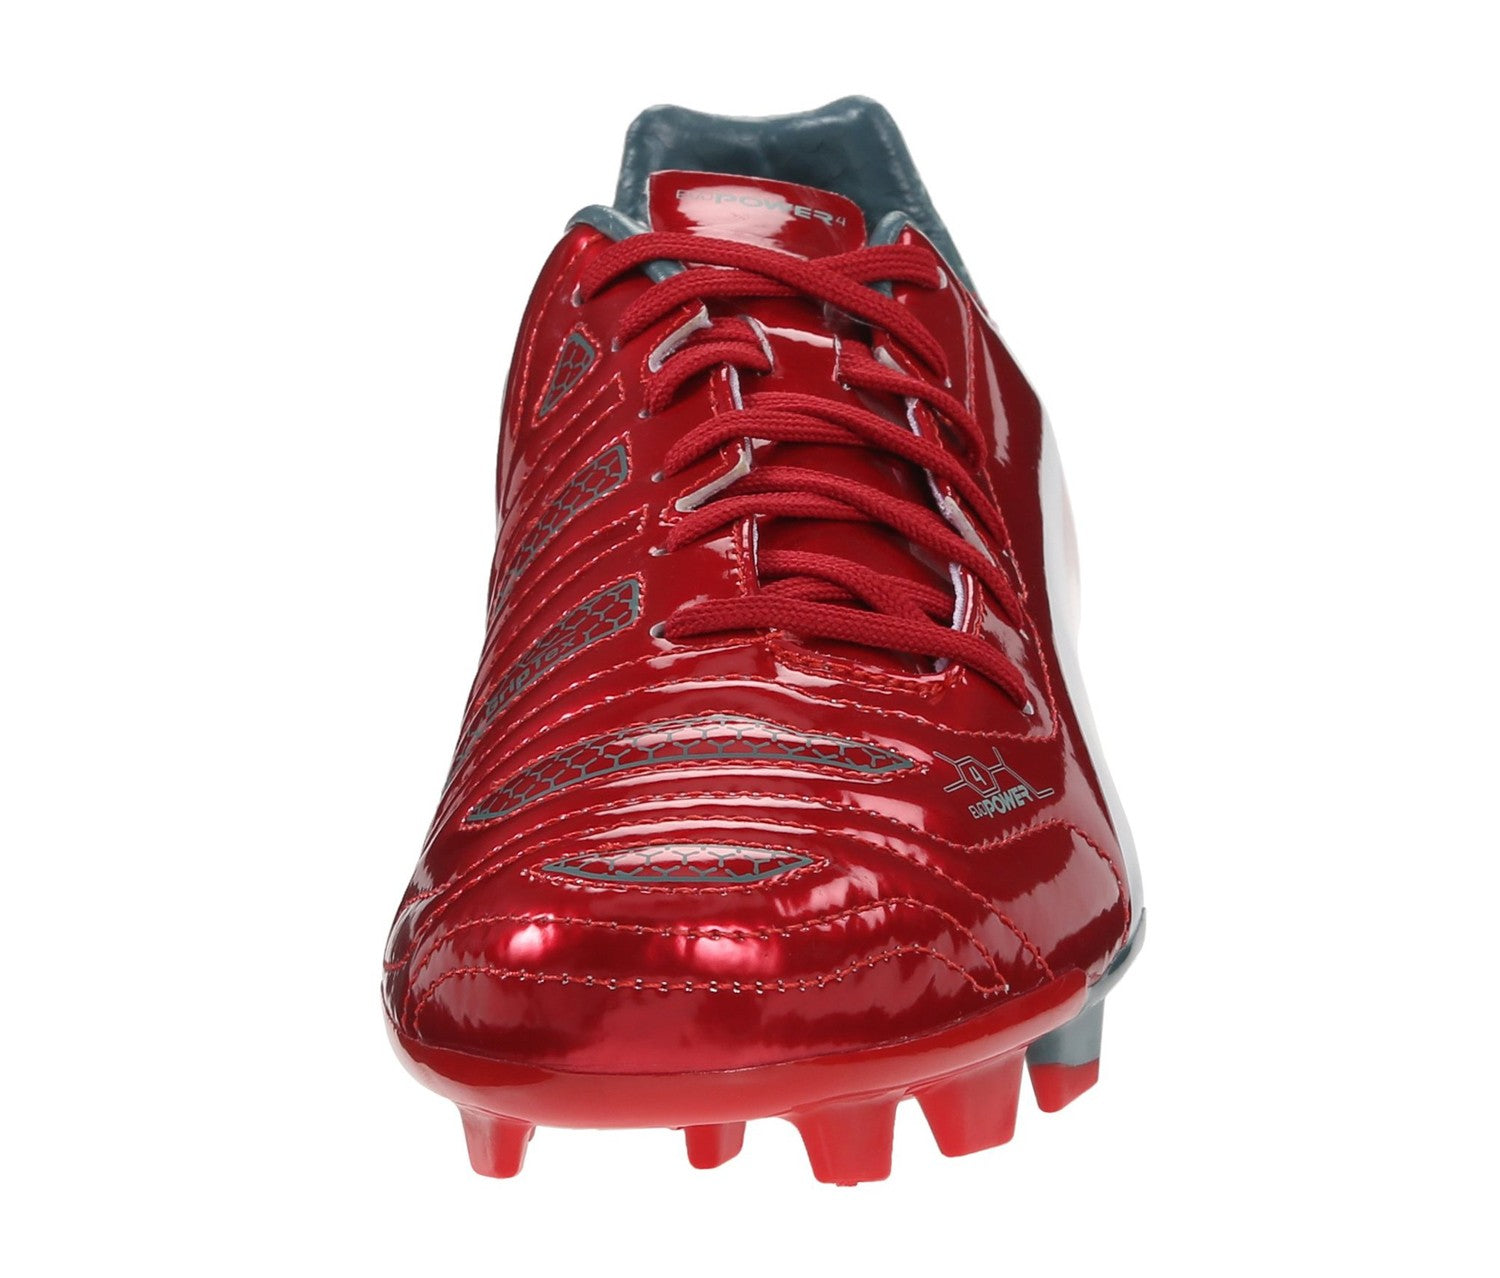 bf66e53e406 Boots - Puma evopower 4.2 FG Soccer Boots - 8 was sold for R800.00 ...